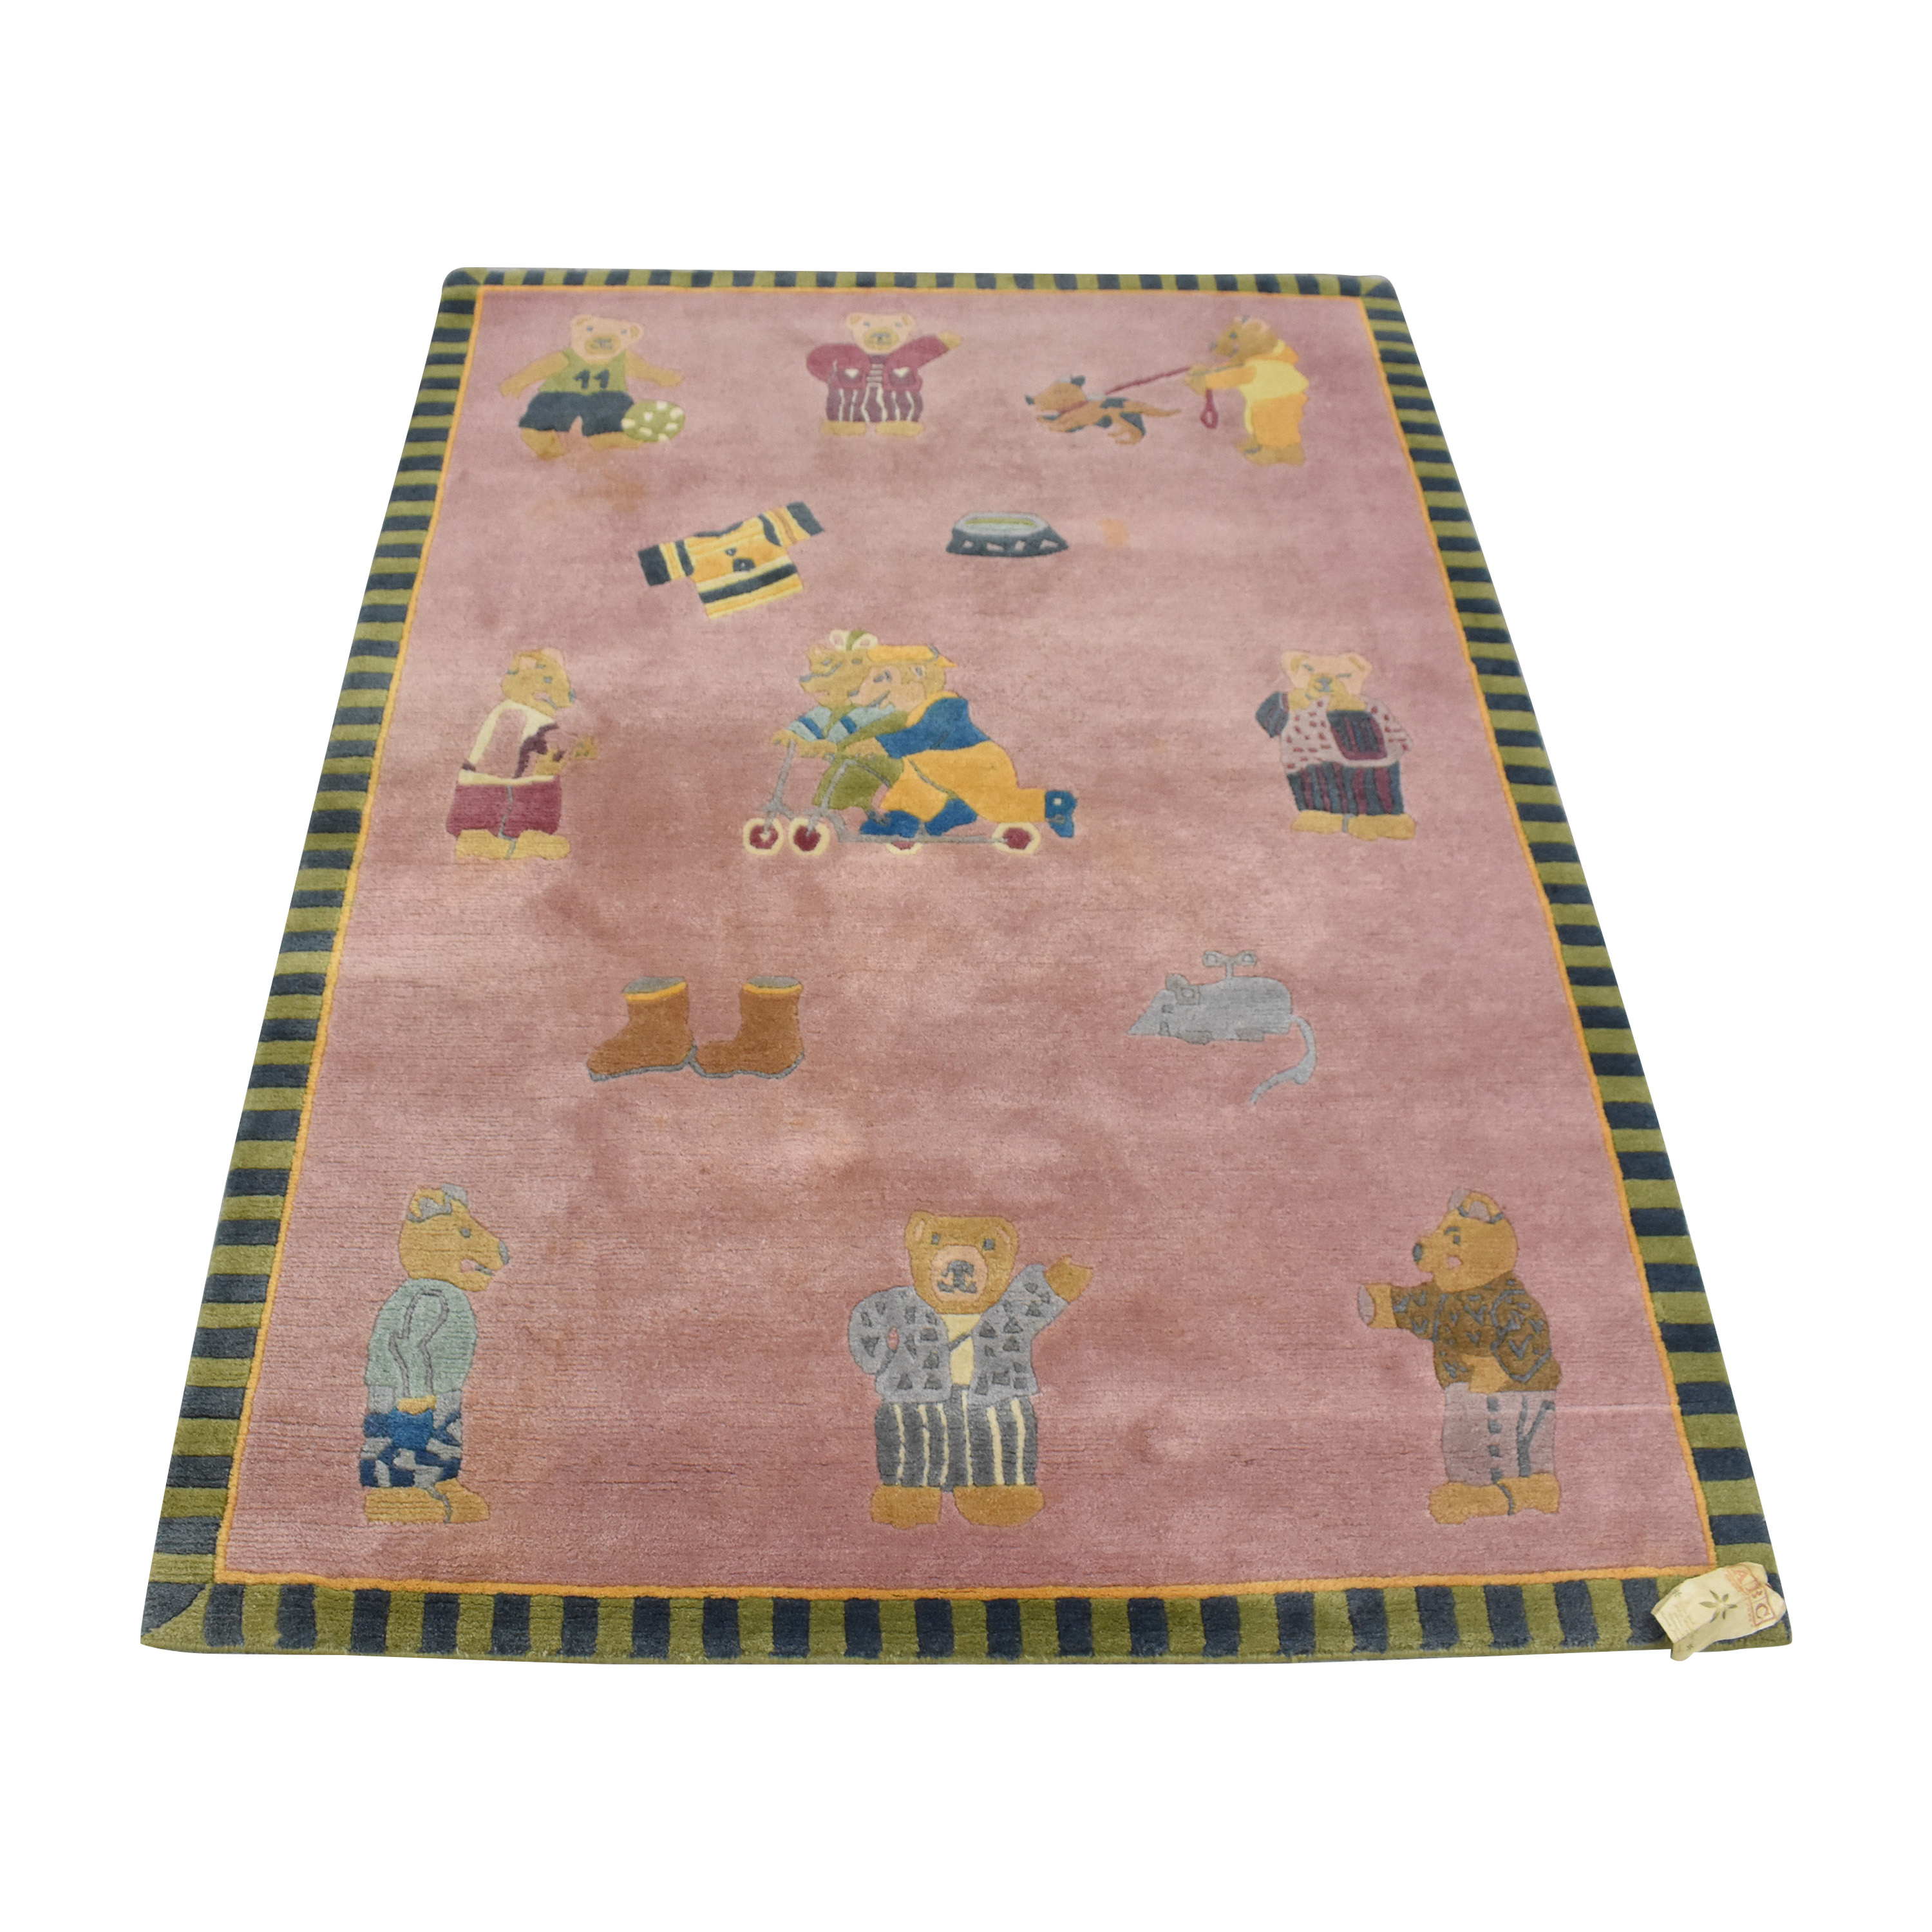 ABC Carpet & Home ABC Carpet & Home Teddy Bear Rug nj